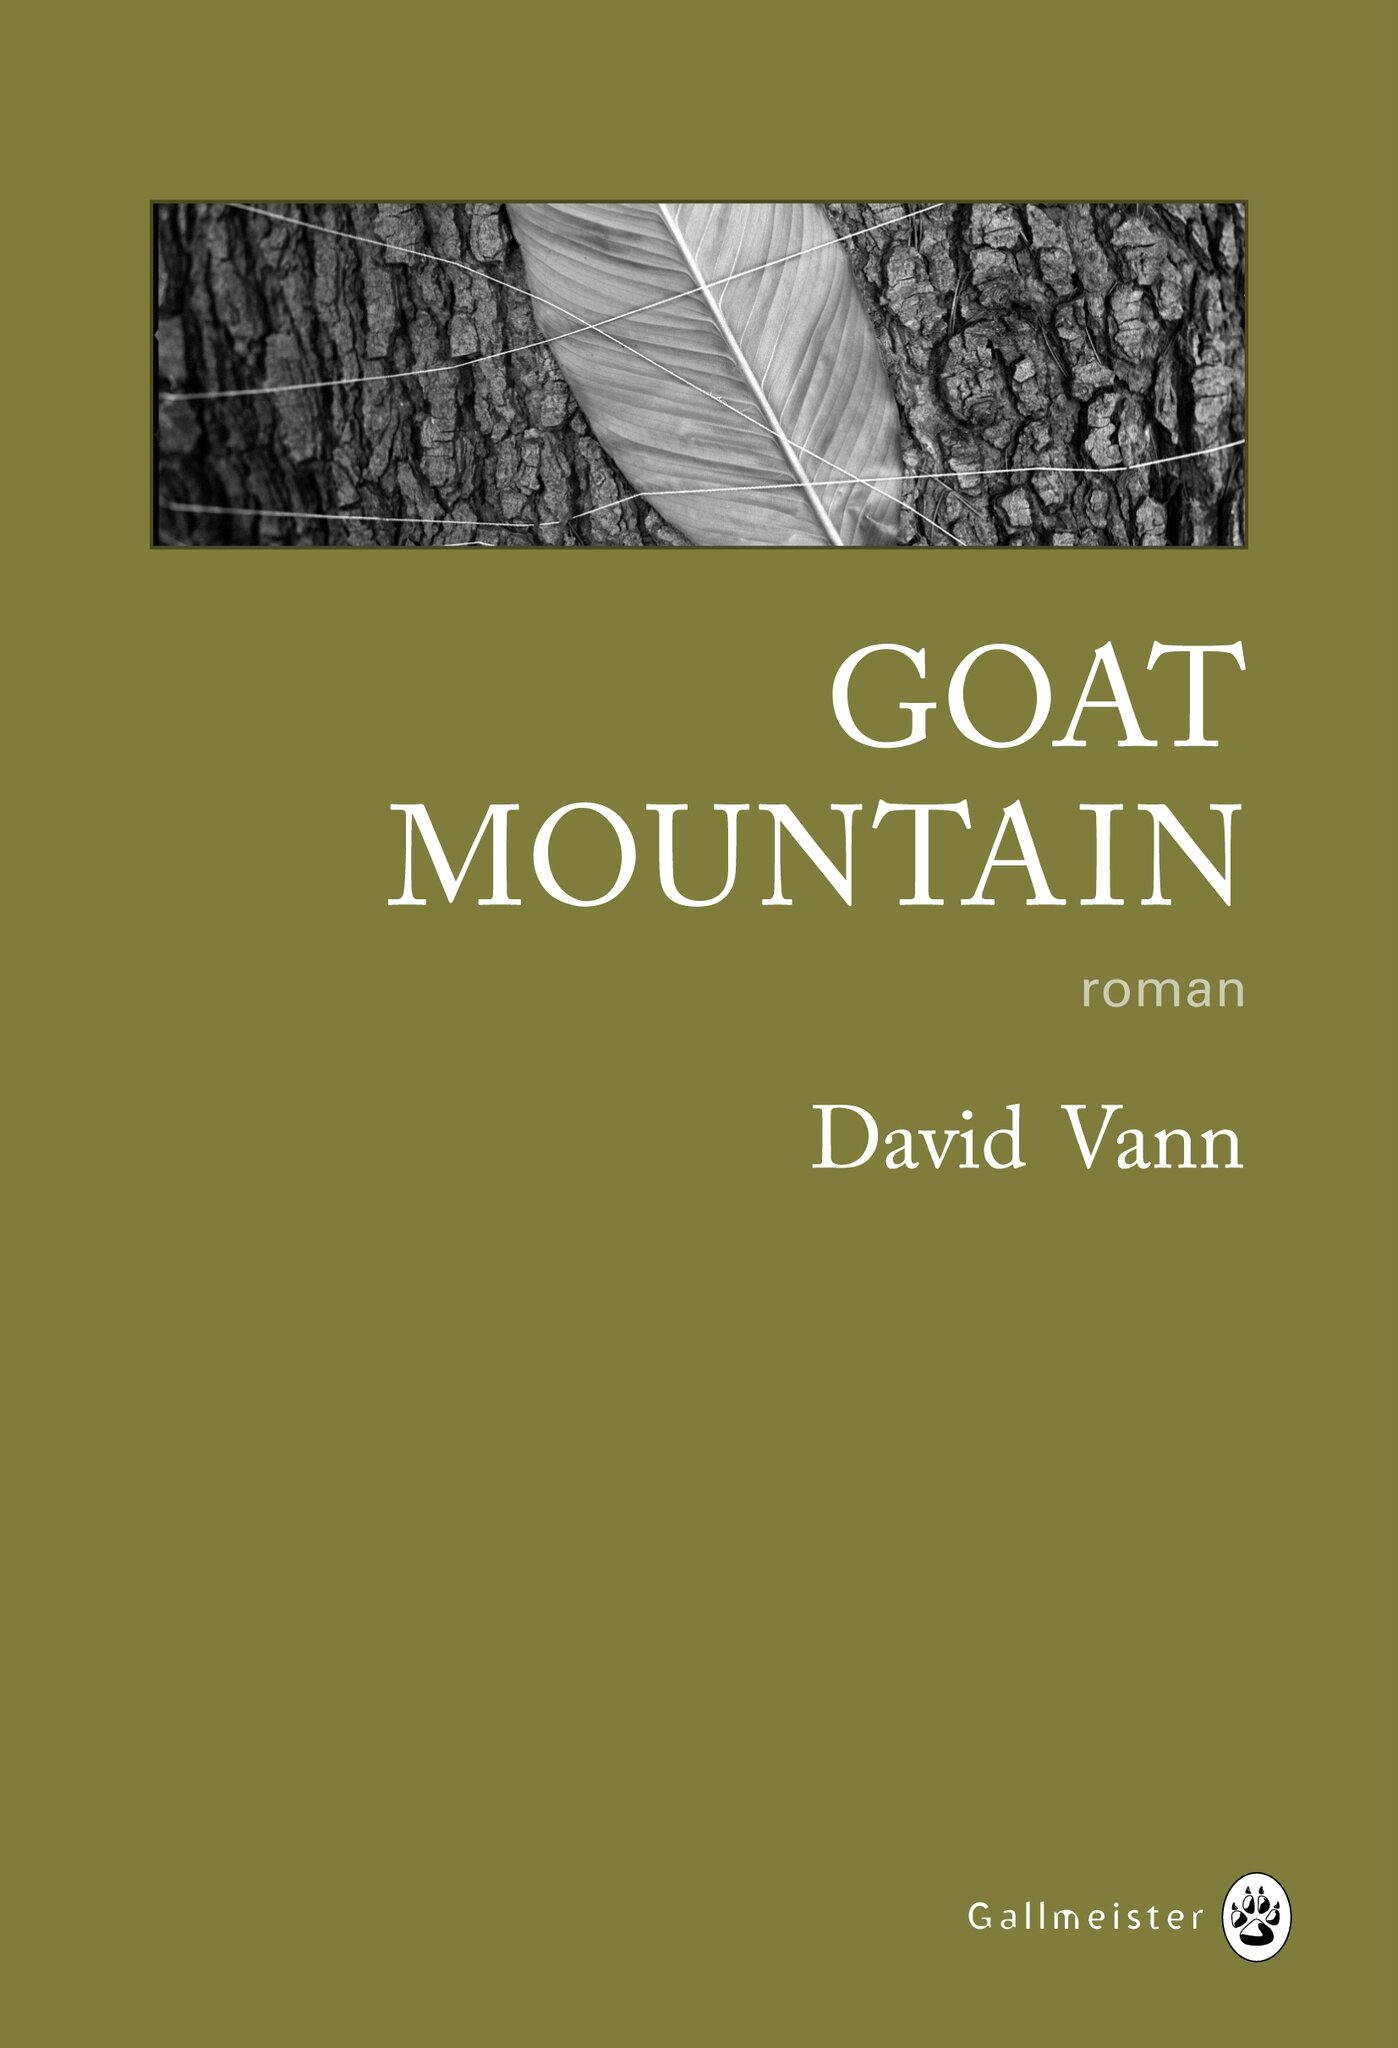 David Vann - Goat Mountain